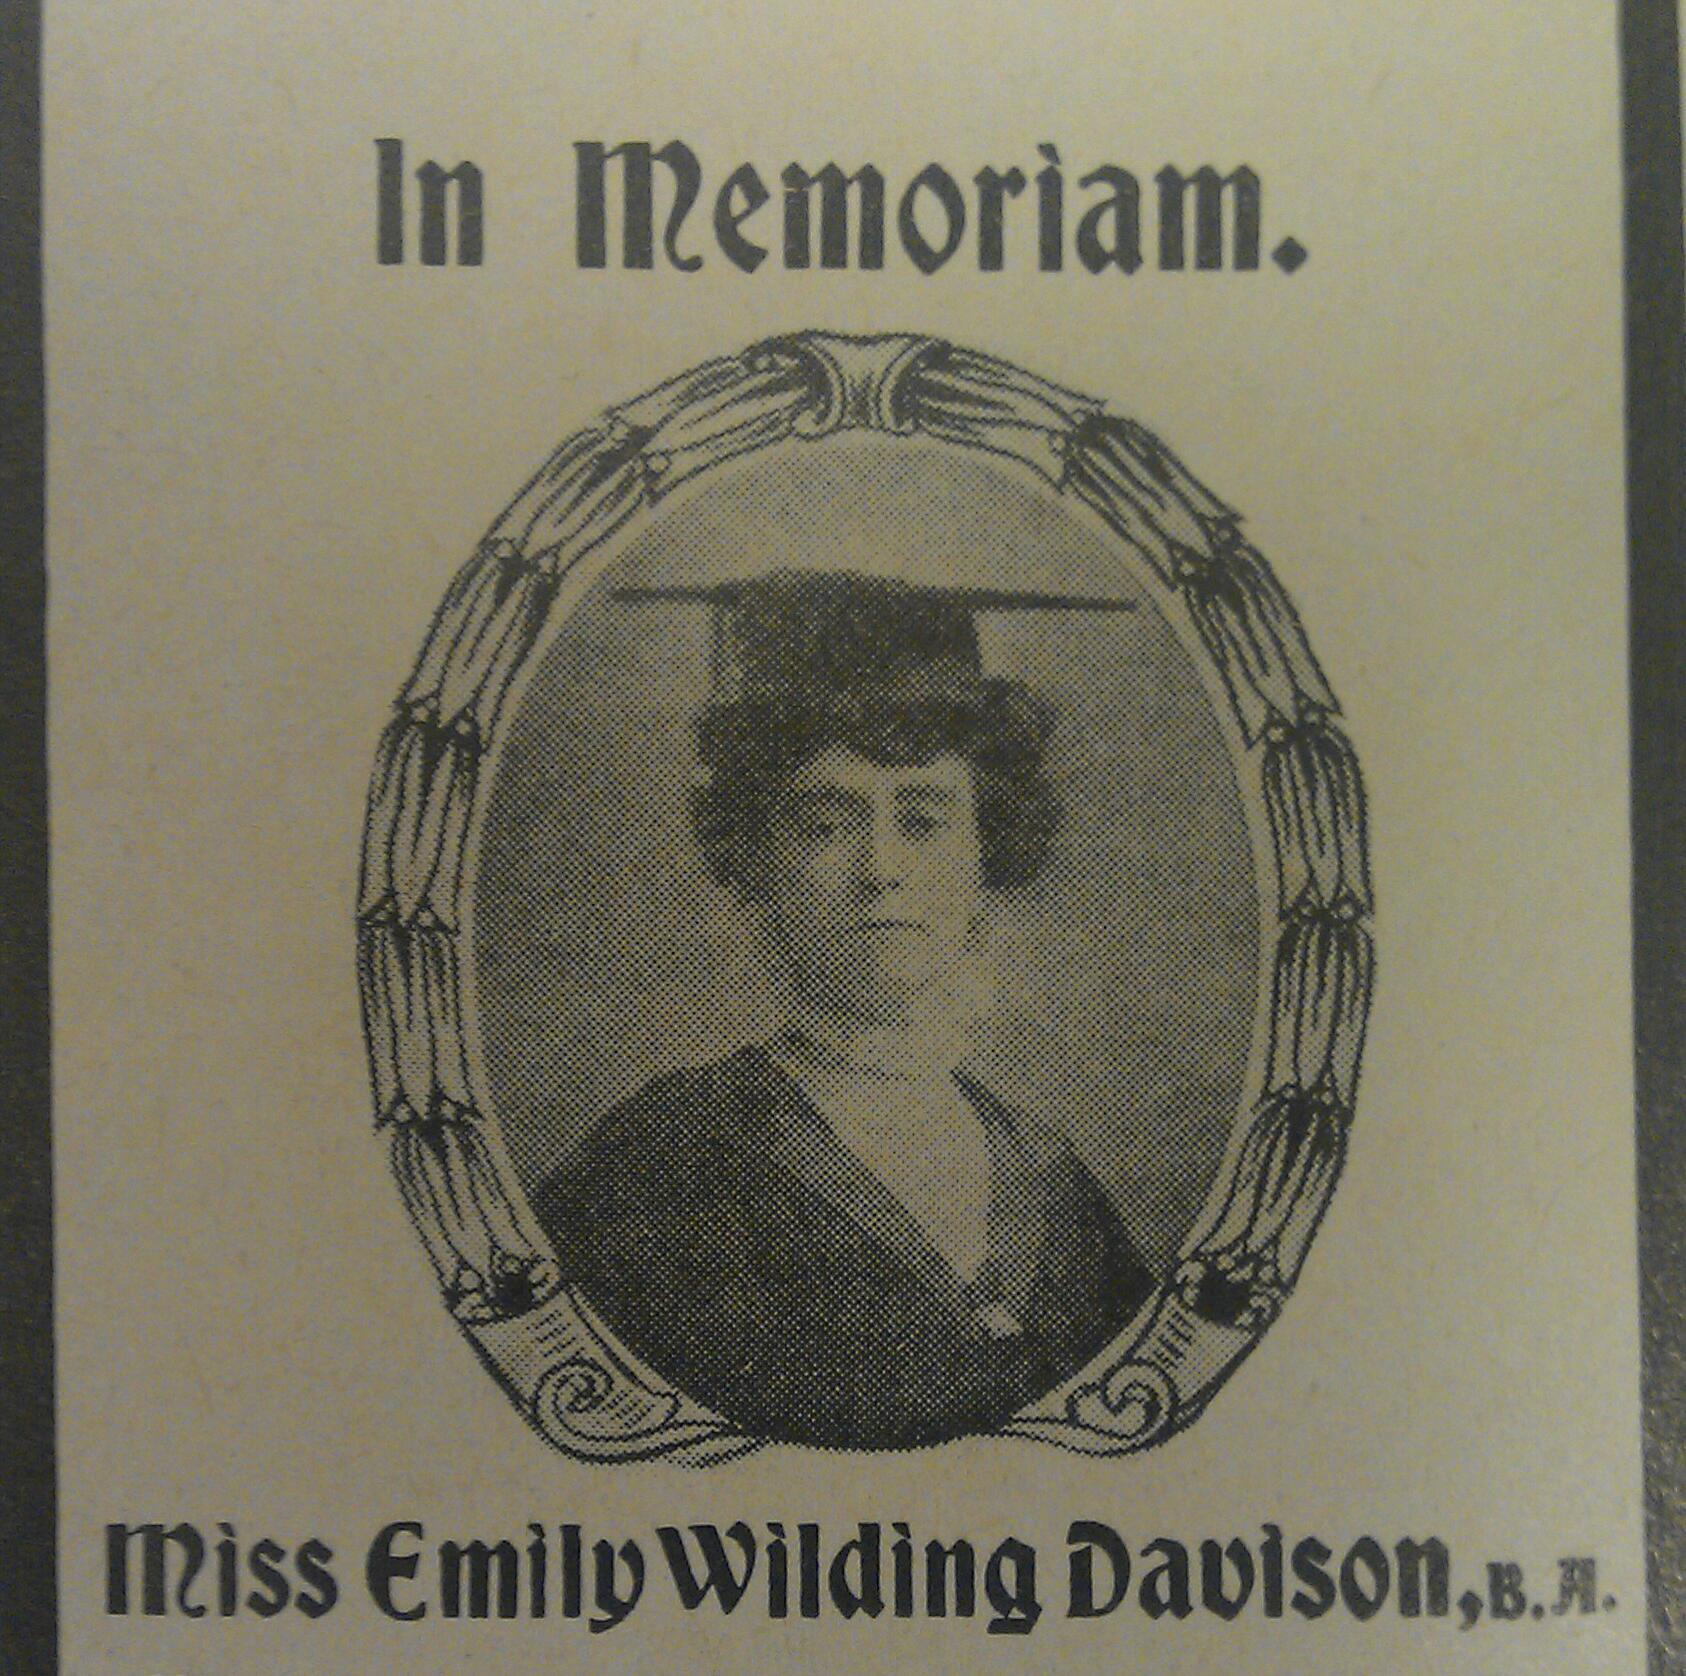 the death of emily davison Marina warner explores emily davison's legacy as the suffragettes' first martyr in a talk given at the inaugural wilding festival at st george's bloomsbury, where davison's memorial service was held[1] emily wilding davison was born in 1872 in a substantial house in greenwich, the middle.